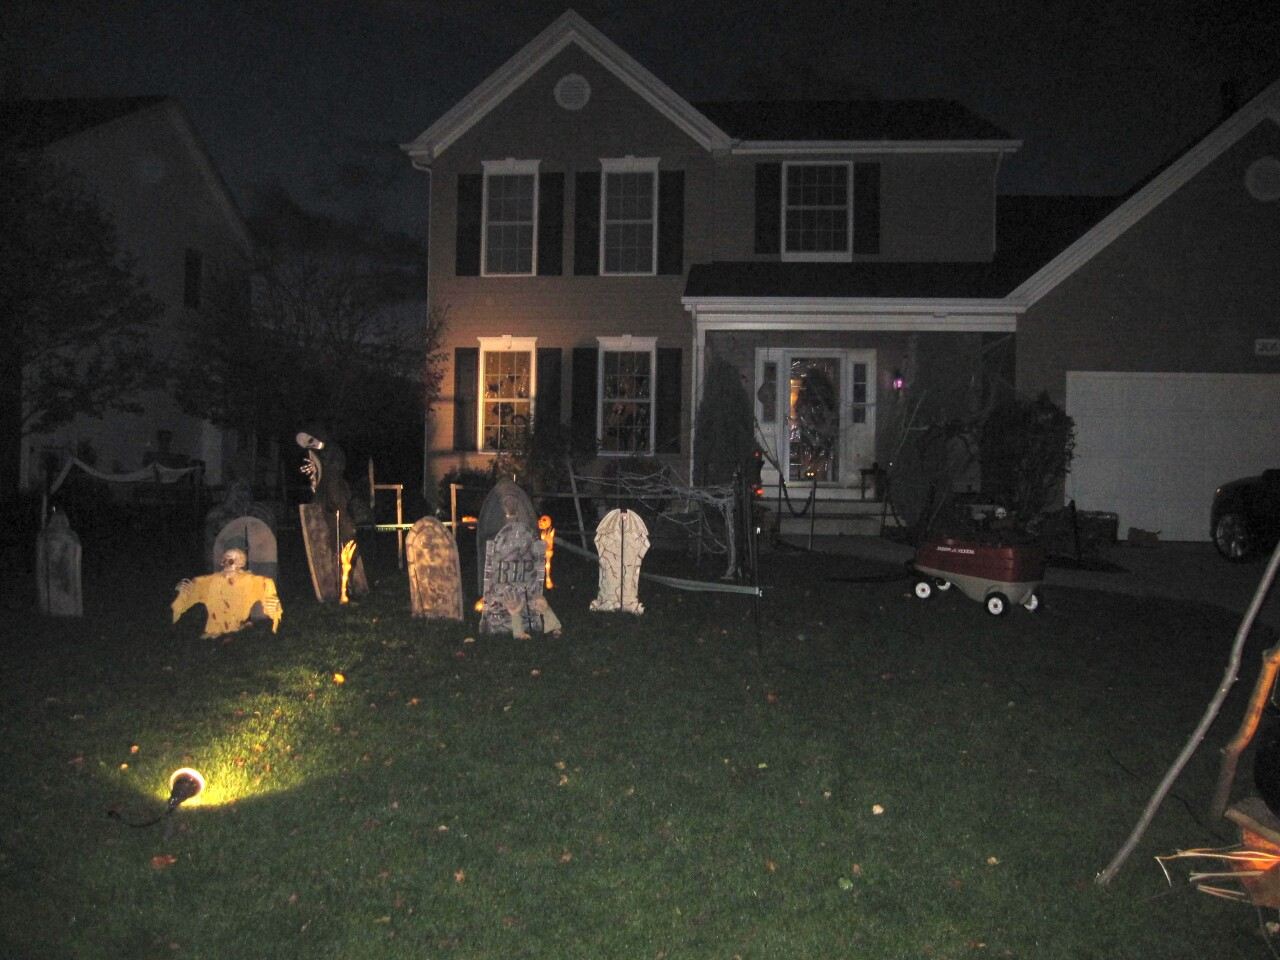 Gavazzi's spooky Halloween set up attracts lots of Trick or Treaters.